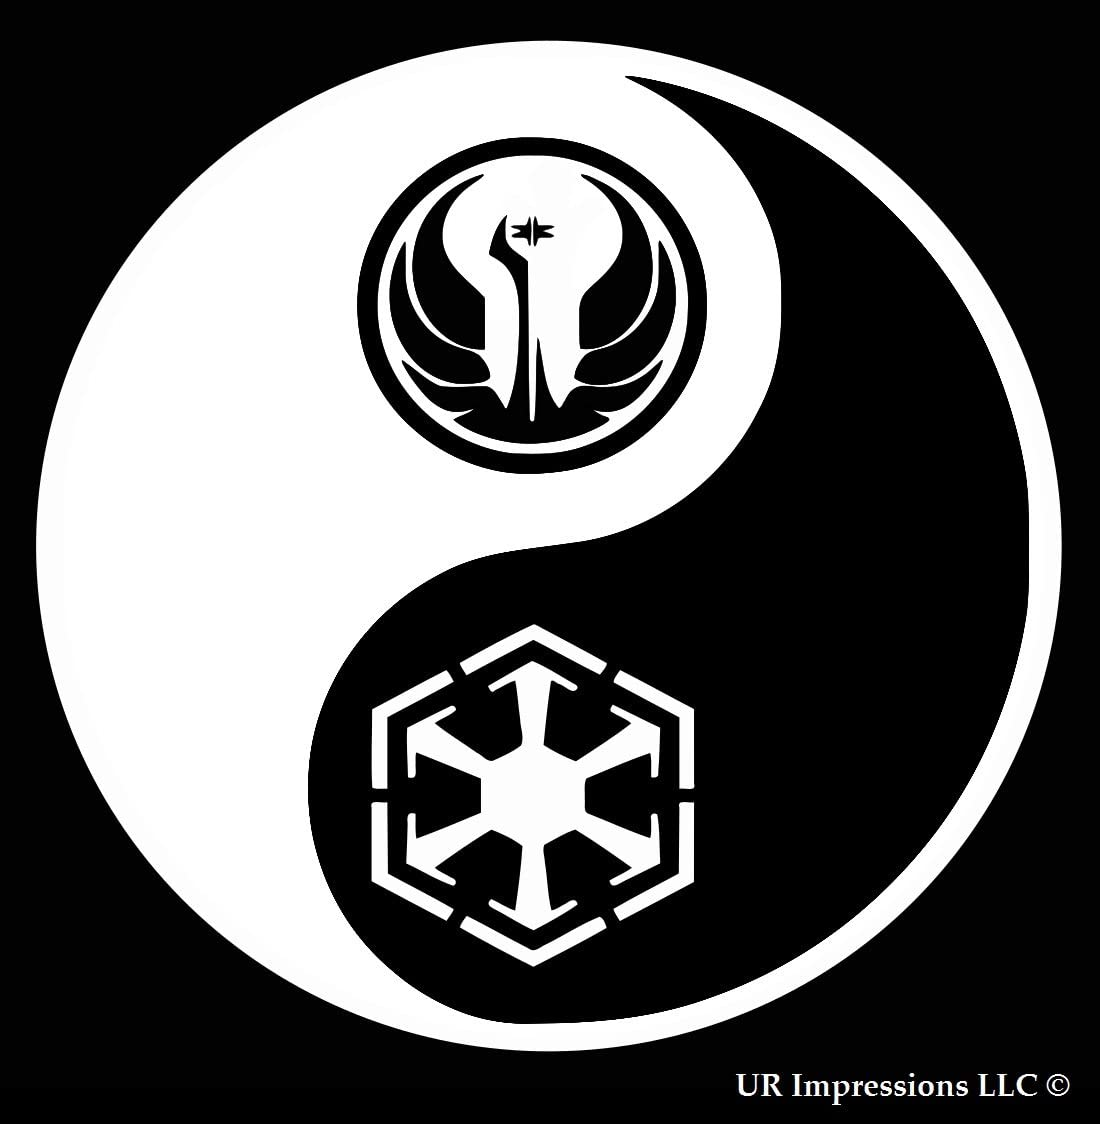 UR Impressions The Force - Jedi Sith Yin Yang Decal Vinyl Sticker Graphics for Car Truck SUV Van Wall Window Laptop|White|5.5 Inch|URI430